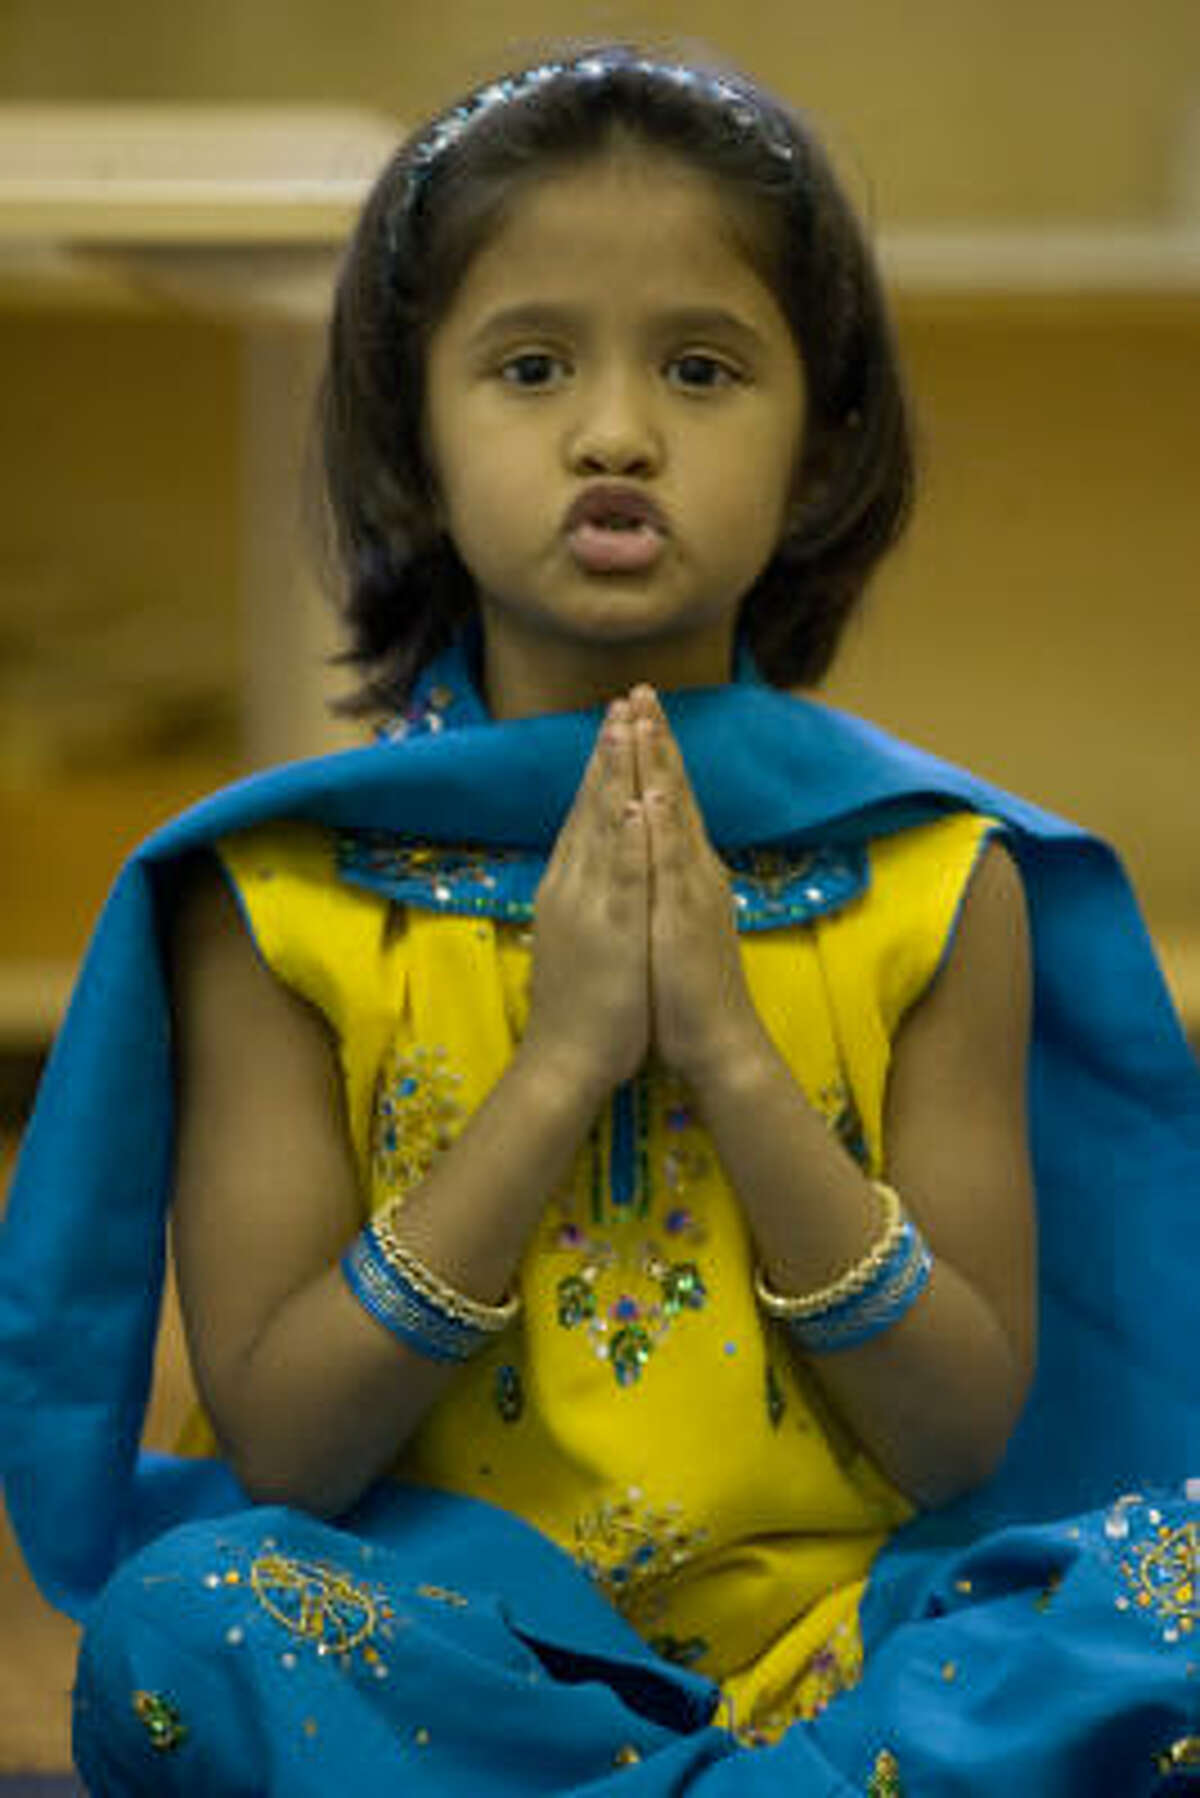 Sakshee Jain says a prayer at Dayanand Arya Vedic Montessori School as her class prepares for the Hindu holiday of Diwali on Wednesday.